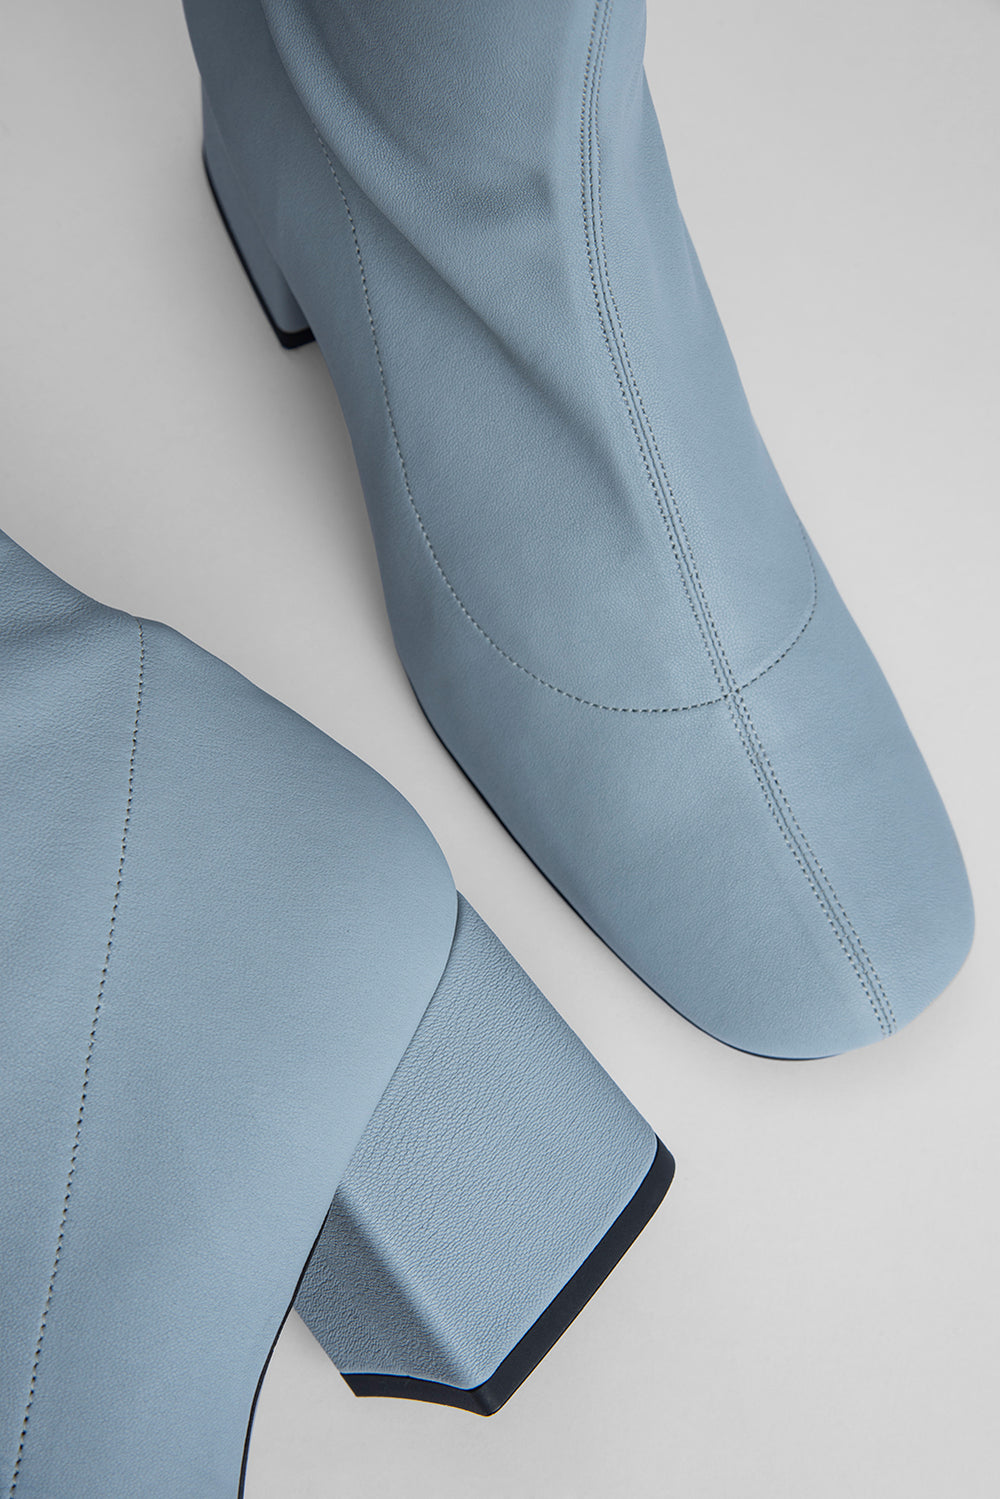 Carlos 42 Light Blue Stretch Leather